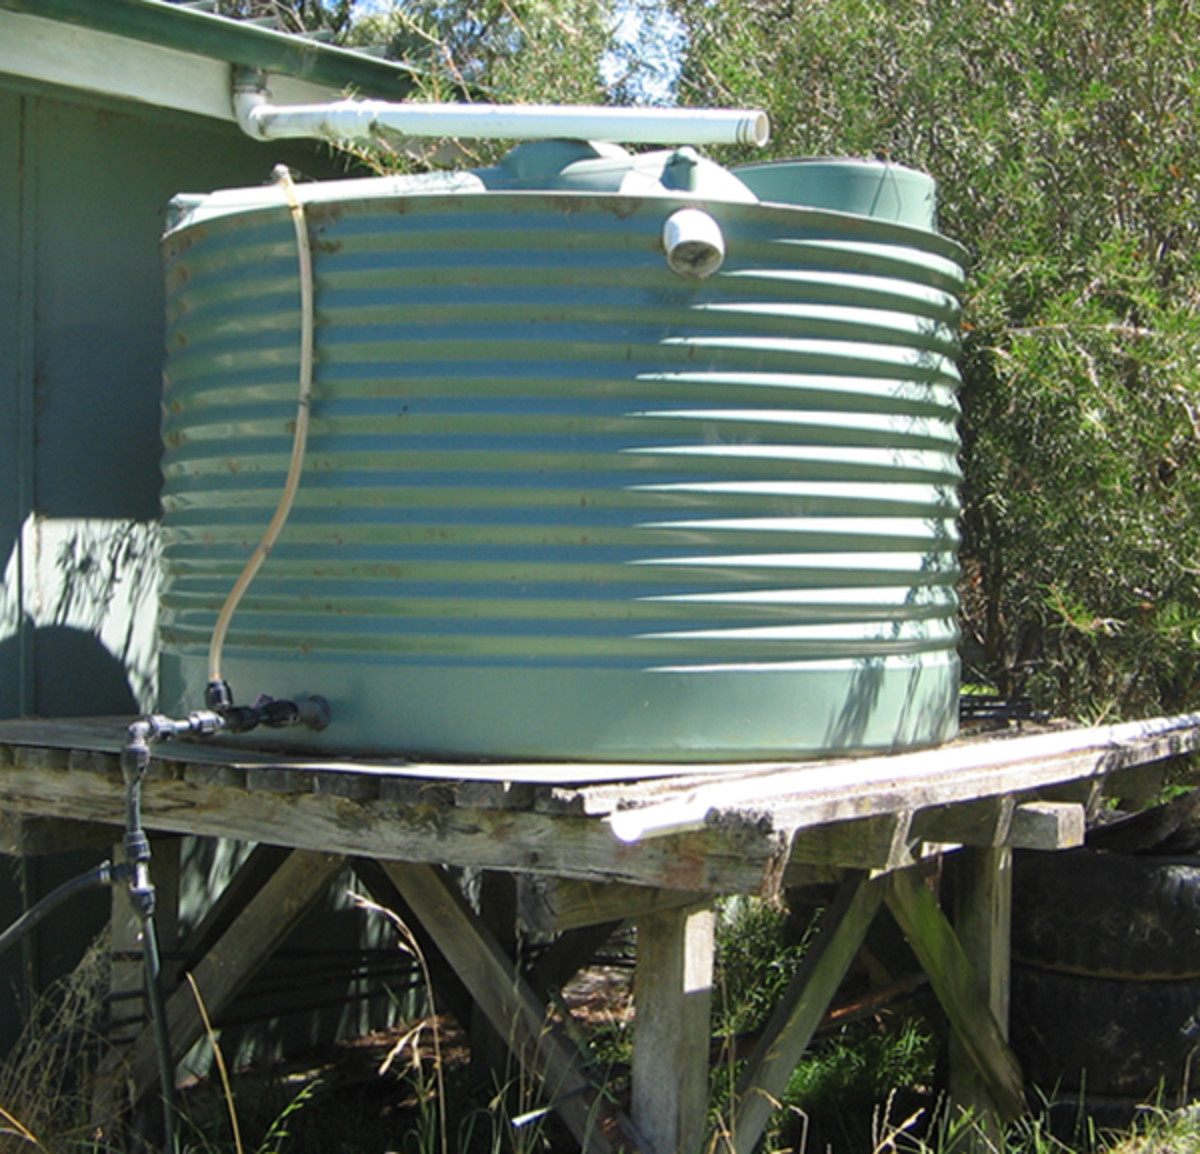 Water storage tank raised on a platform to allow more gravity pressure (head).